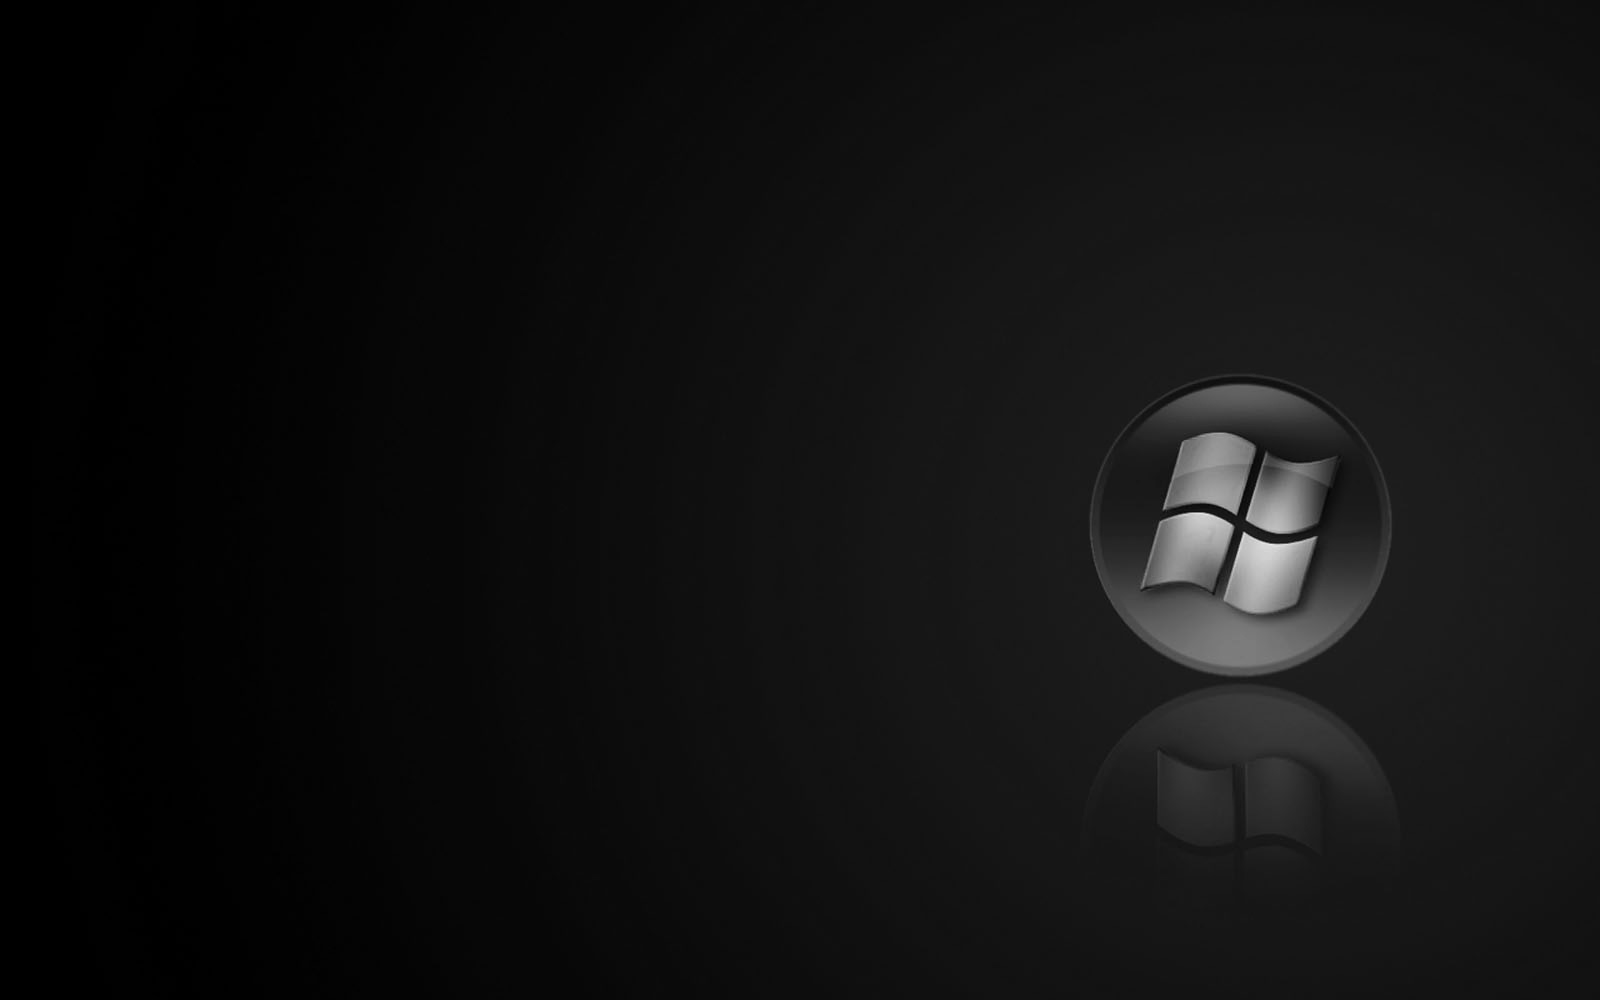 Dark Windows Wallpapers Dark Windows DesktopWallpapers Dark Windows 1600x1000